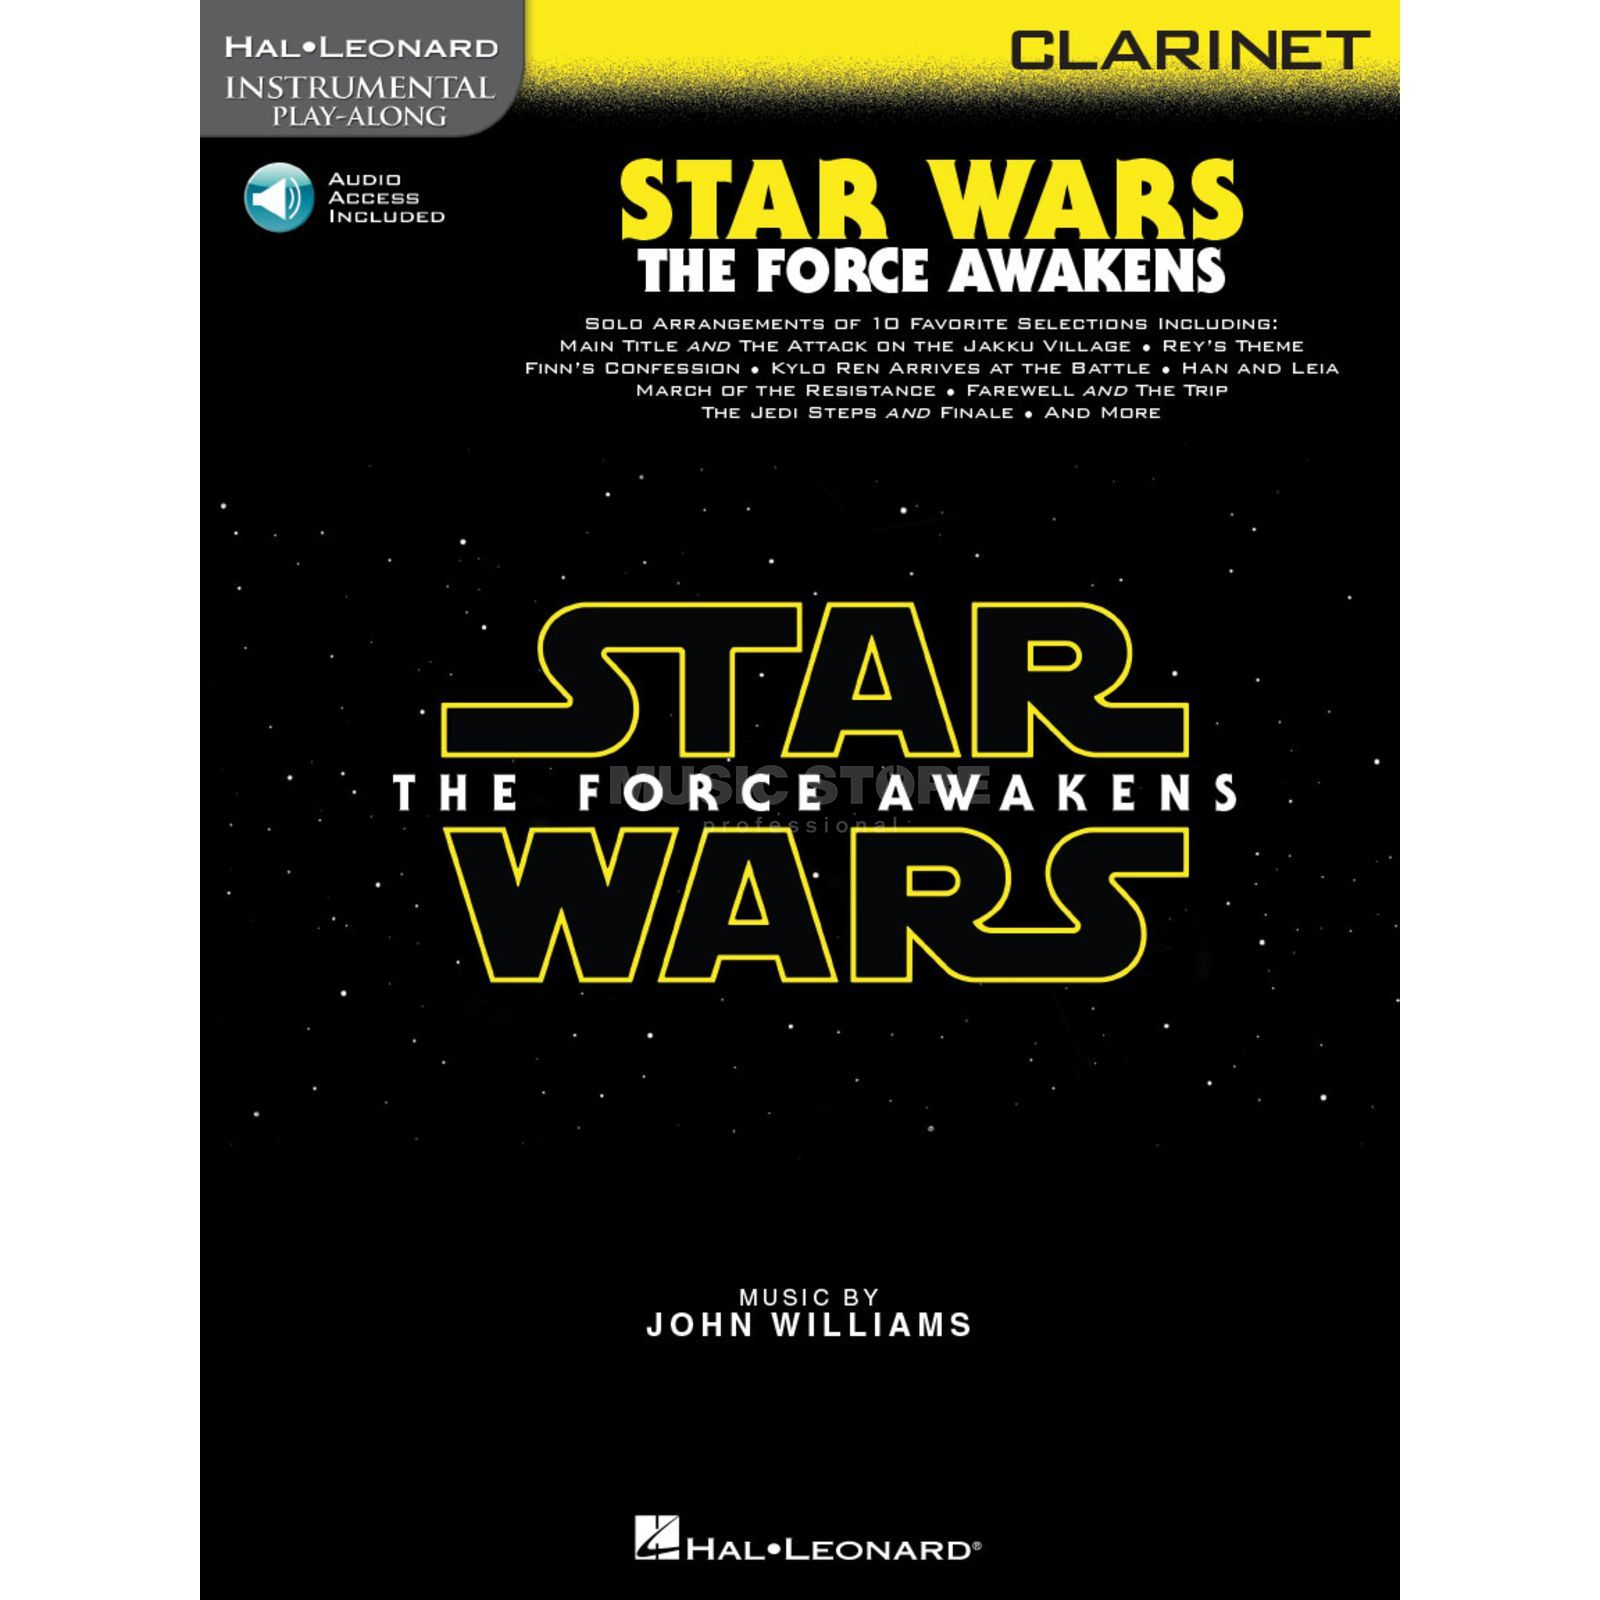 Hal Leonard Instrumental Play-Along: Star Wars - The Force Awakens - Clarinet Imagen del producto